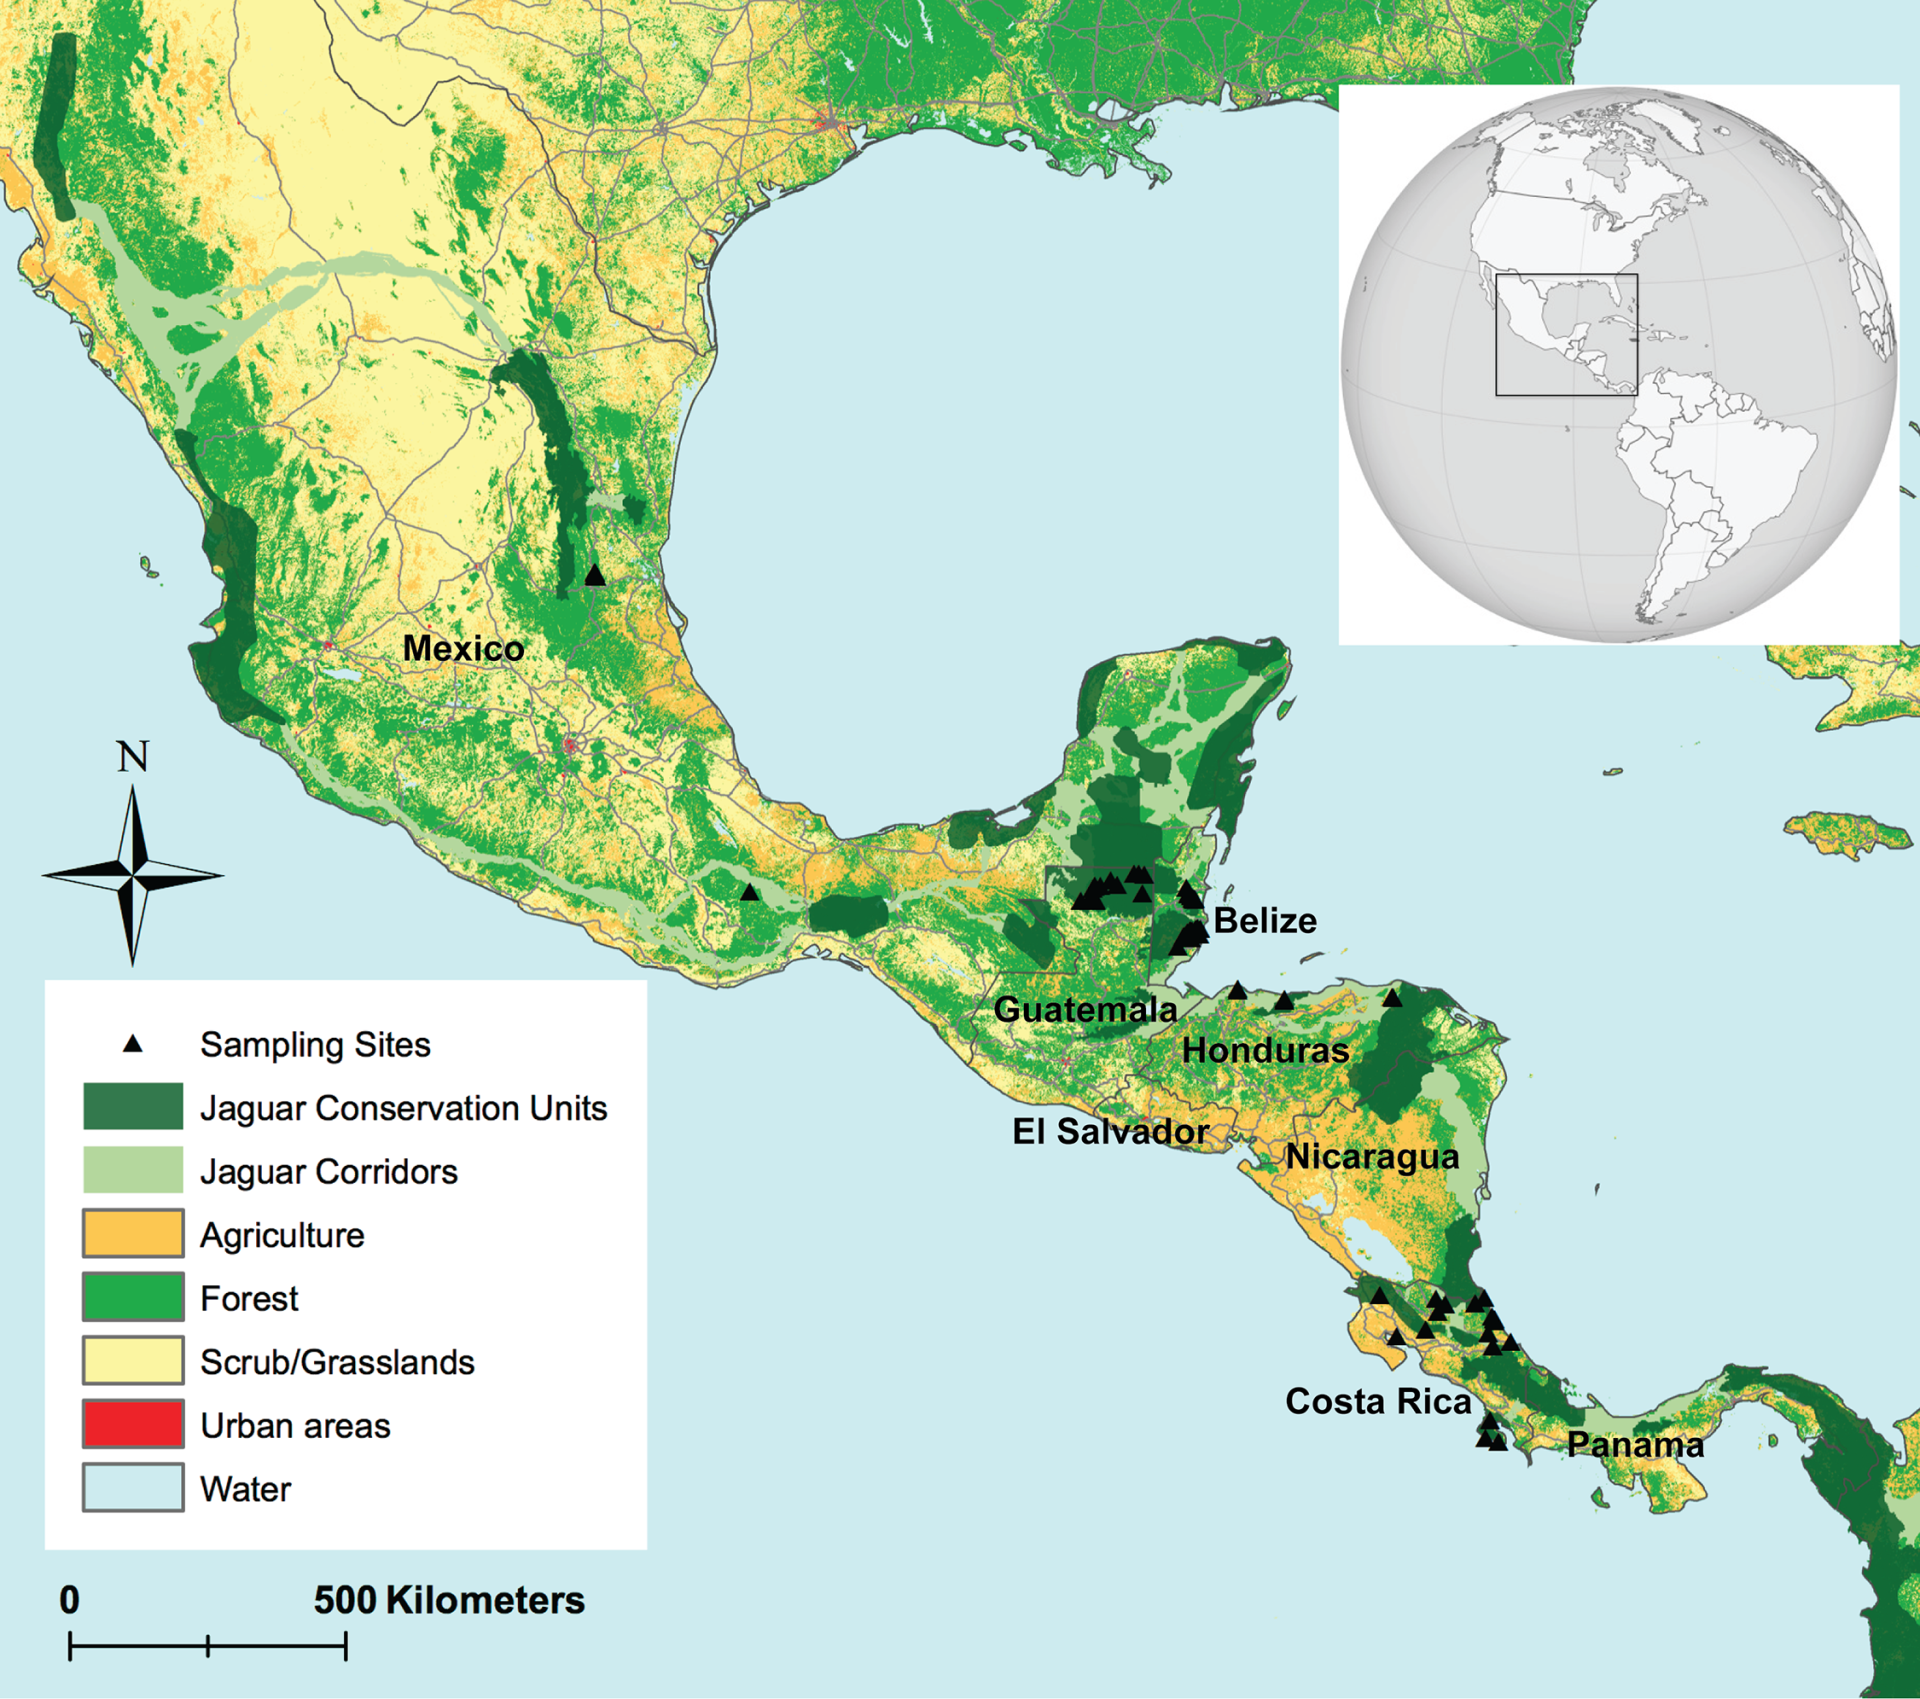 Genetic Diversity and Population Structure of Mesoamerican Jaguars (Panthera onca): Implications for Conservation and Management